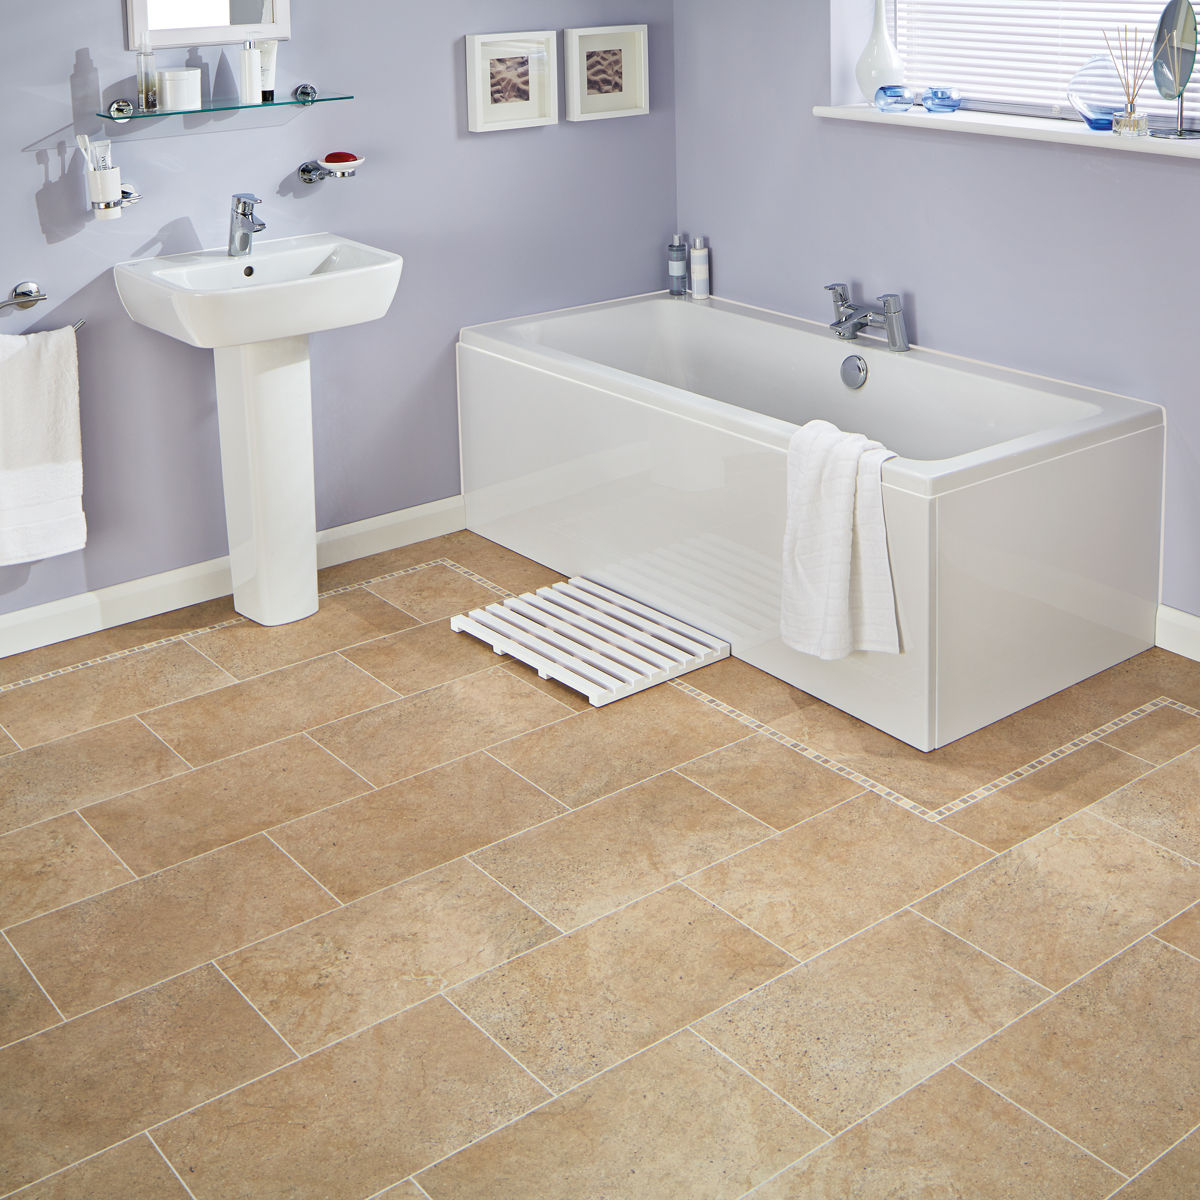 Laying Vinyl Tiles In Bathroom: Karndean Knight Tile Bath Stone ST12 Vinyl Flooring